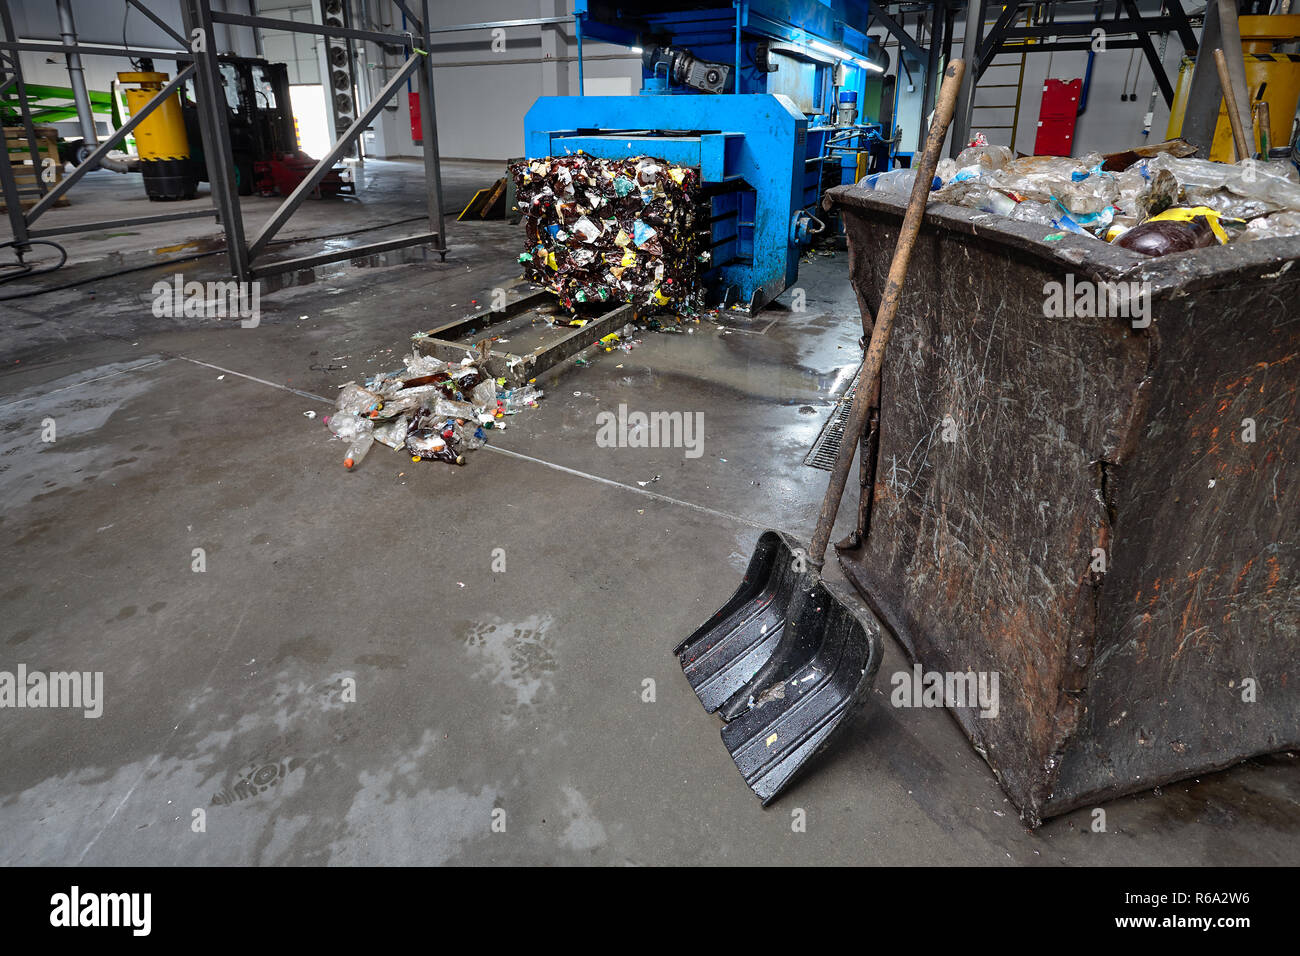 Modern waste sorting and recycling plant, hydraulic press makes wired bale from pressed PET bottles for processing and reuse of plastic. Concept of en Stock Photo